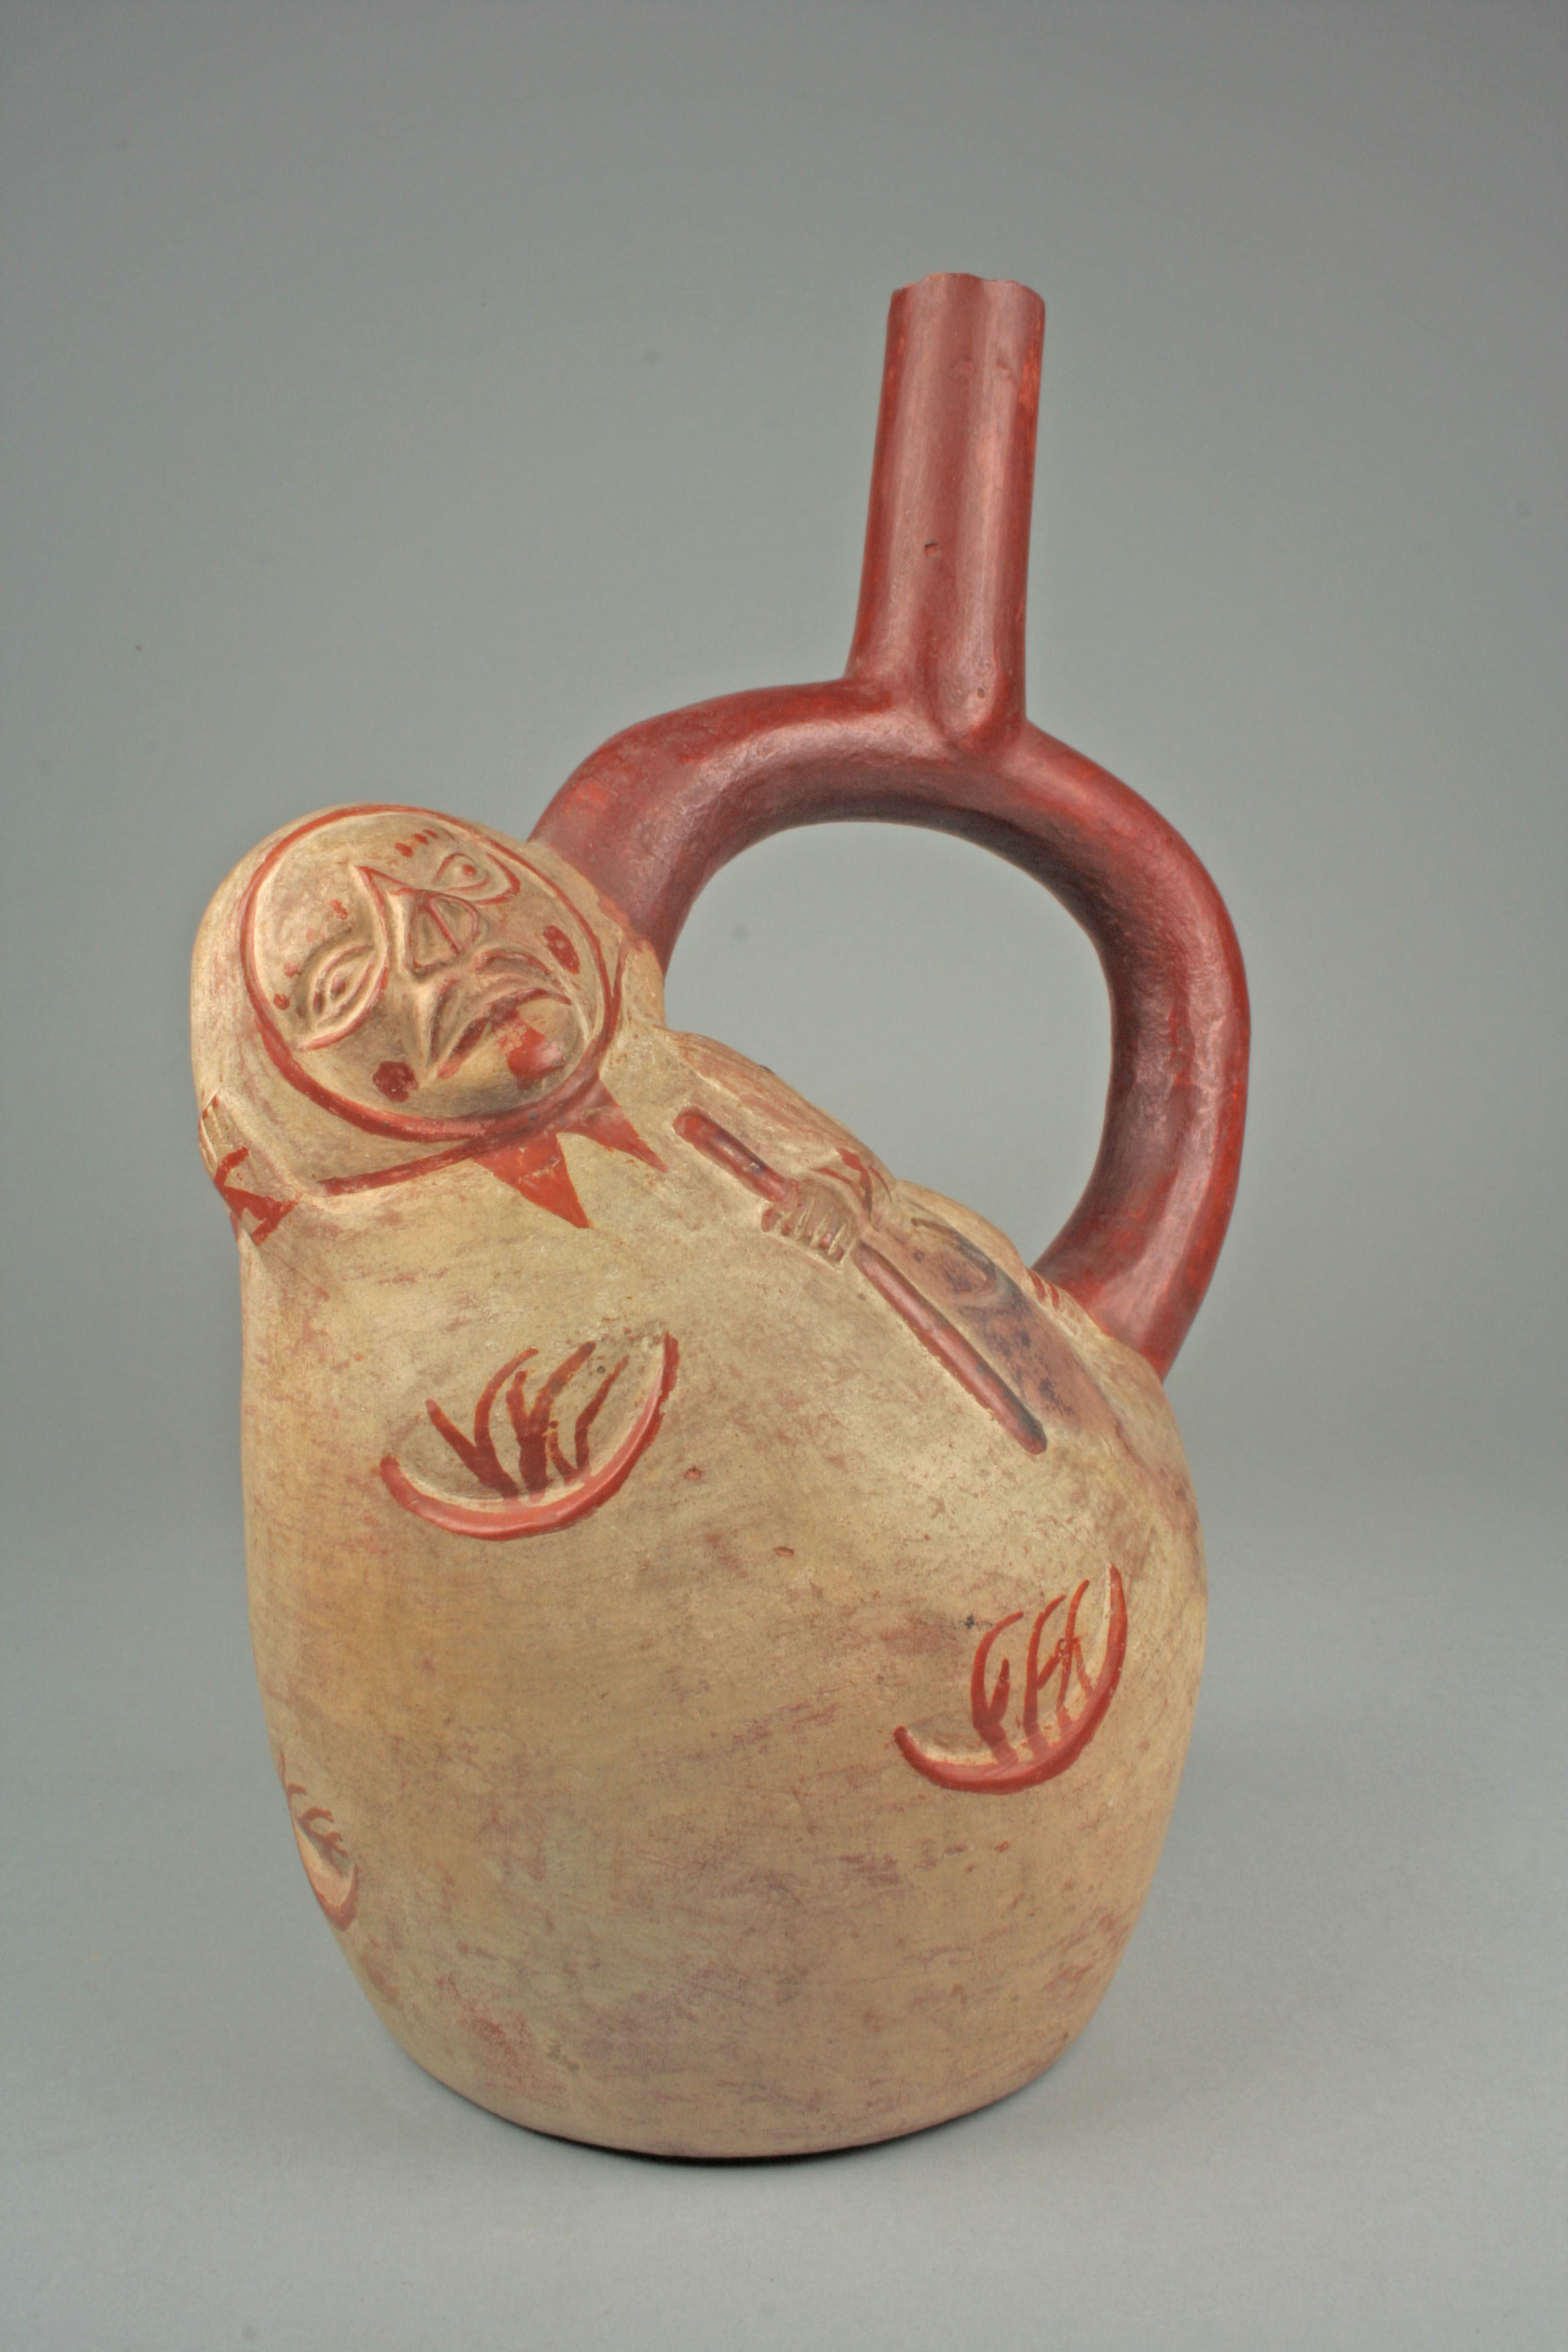 """an old ceramic jug that resembles a potato with a handle sticking out. the potato jug is anthropomorphized, with a head that has a stern looking face at the top and a hand holding a staff painted on the """"body"""""""